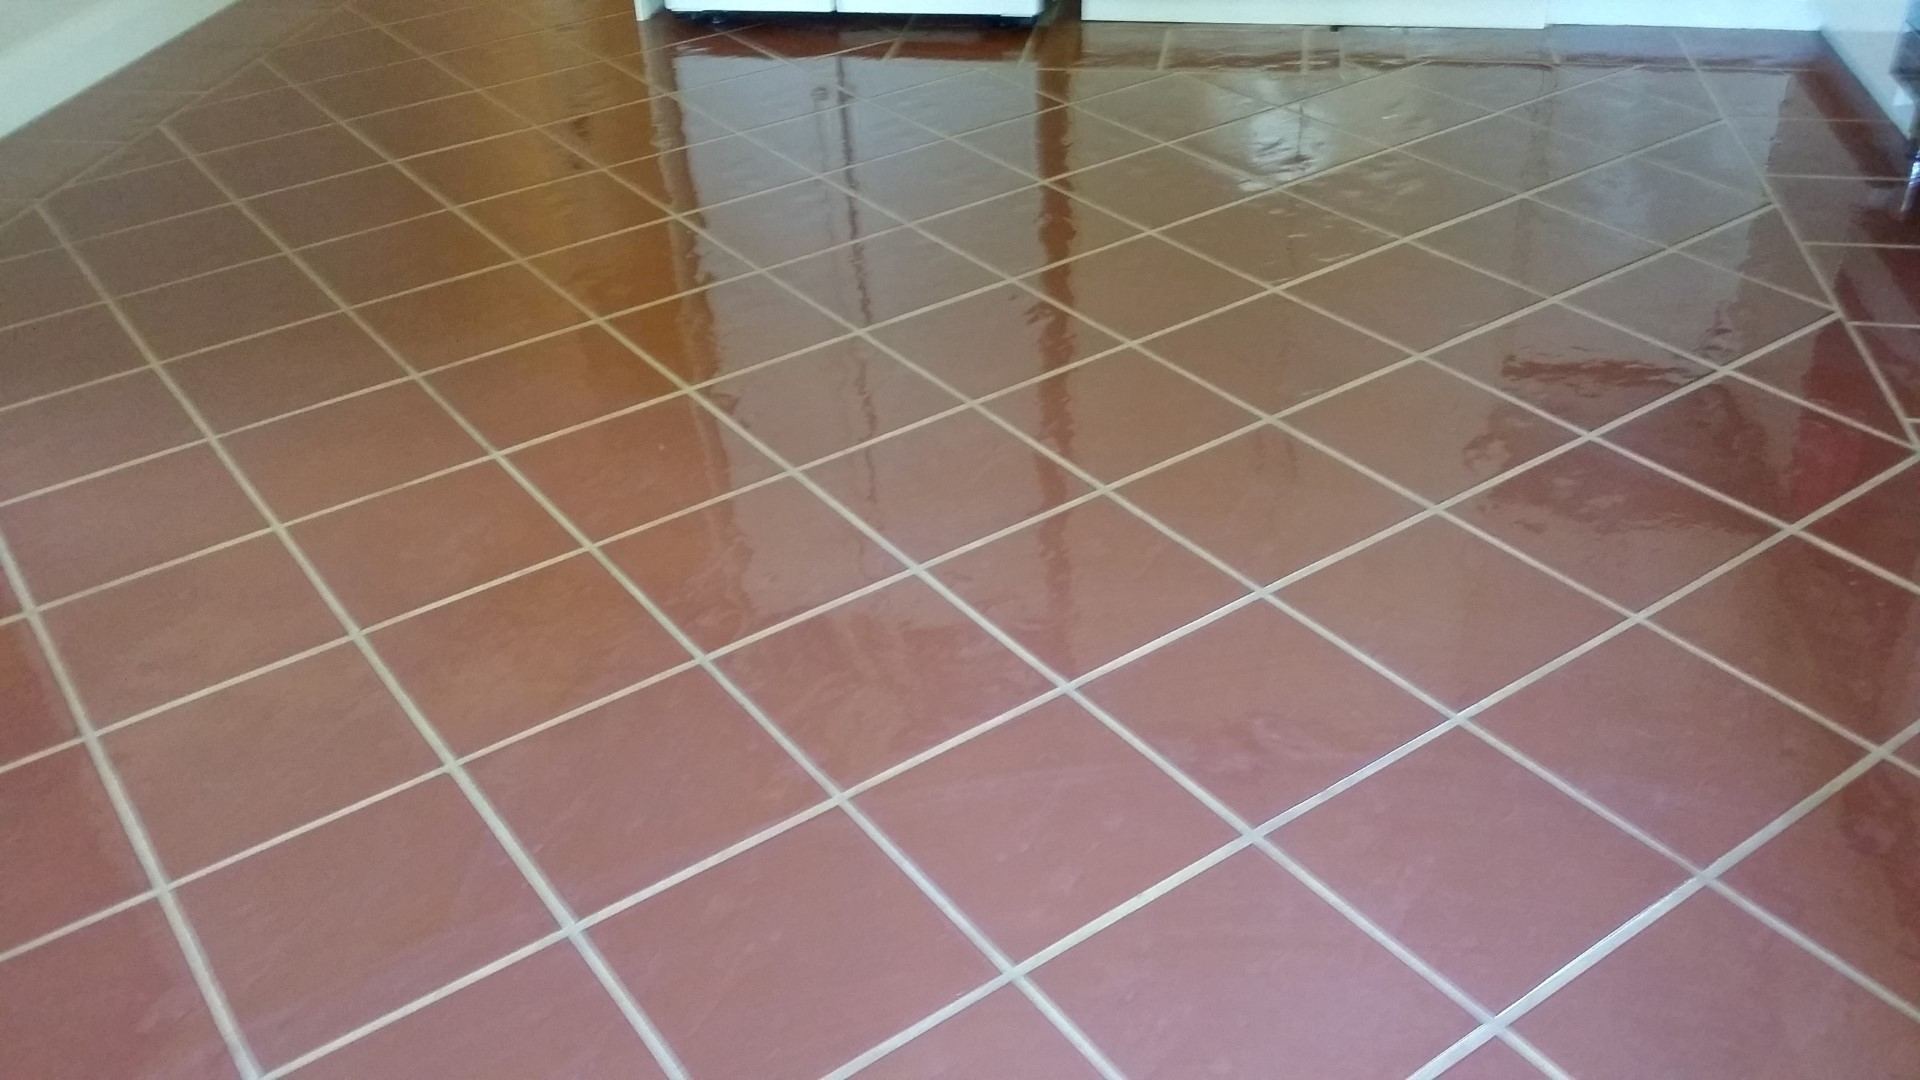 Terracotta Floor Cleaning Stripping And Sealing Perth